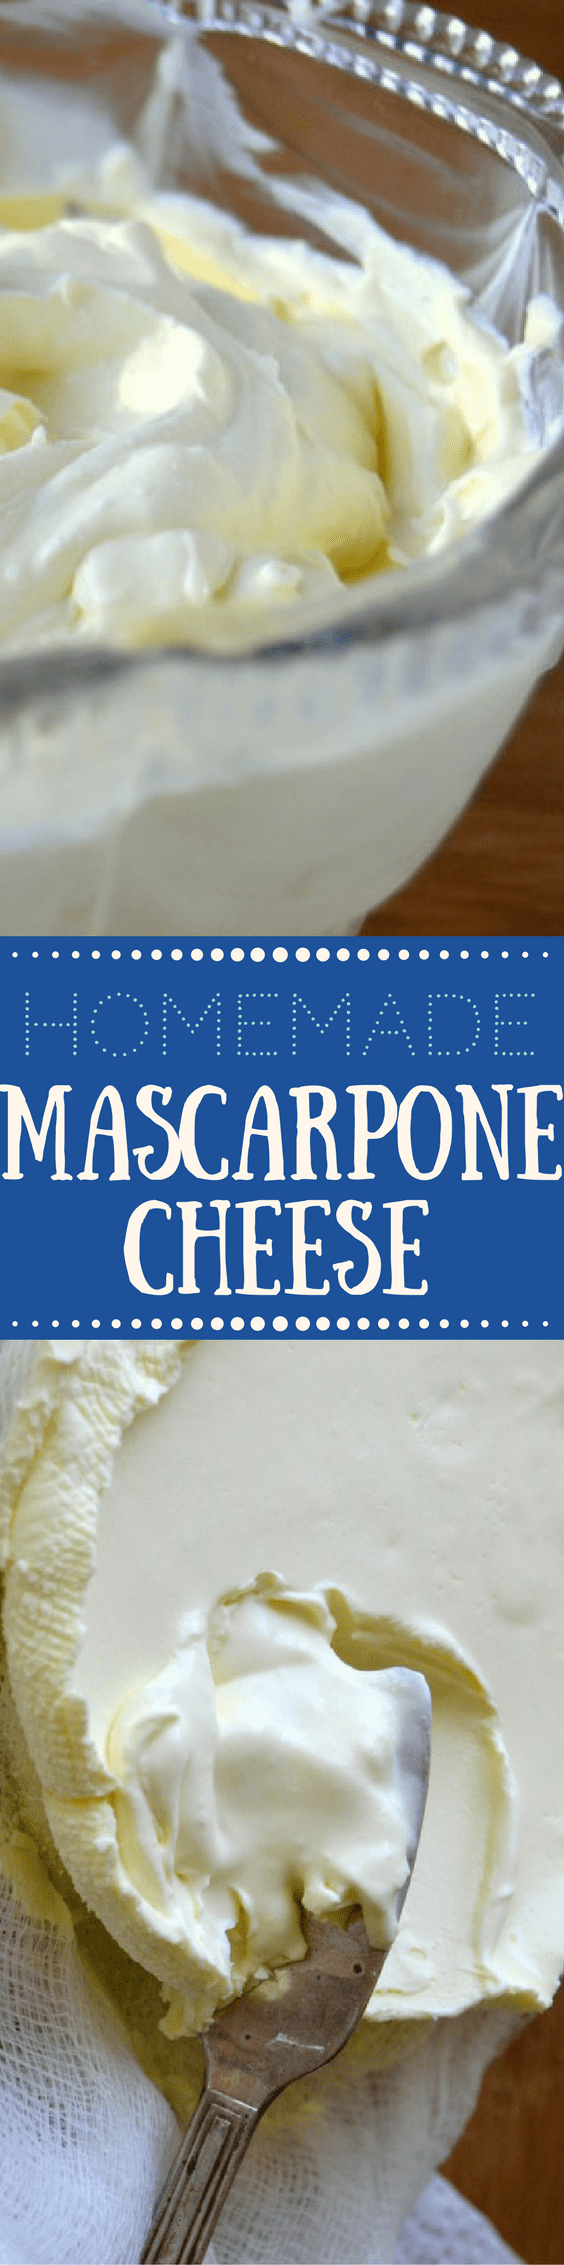 Creamy homemade mascarpone cheese is easy and fun to make right in your own kitchen --- use it in all sorts of authentic Italian recipes, both sweet and savory --- and save a lot of money while you're at it! #diycheese #homemadecheese #cheesemaking #tiramisu #creamcheese #homemadecreamcheese #easycheese #mascarpone #Italiancheese